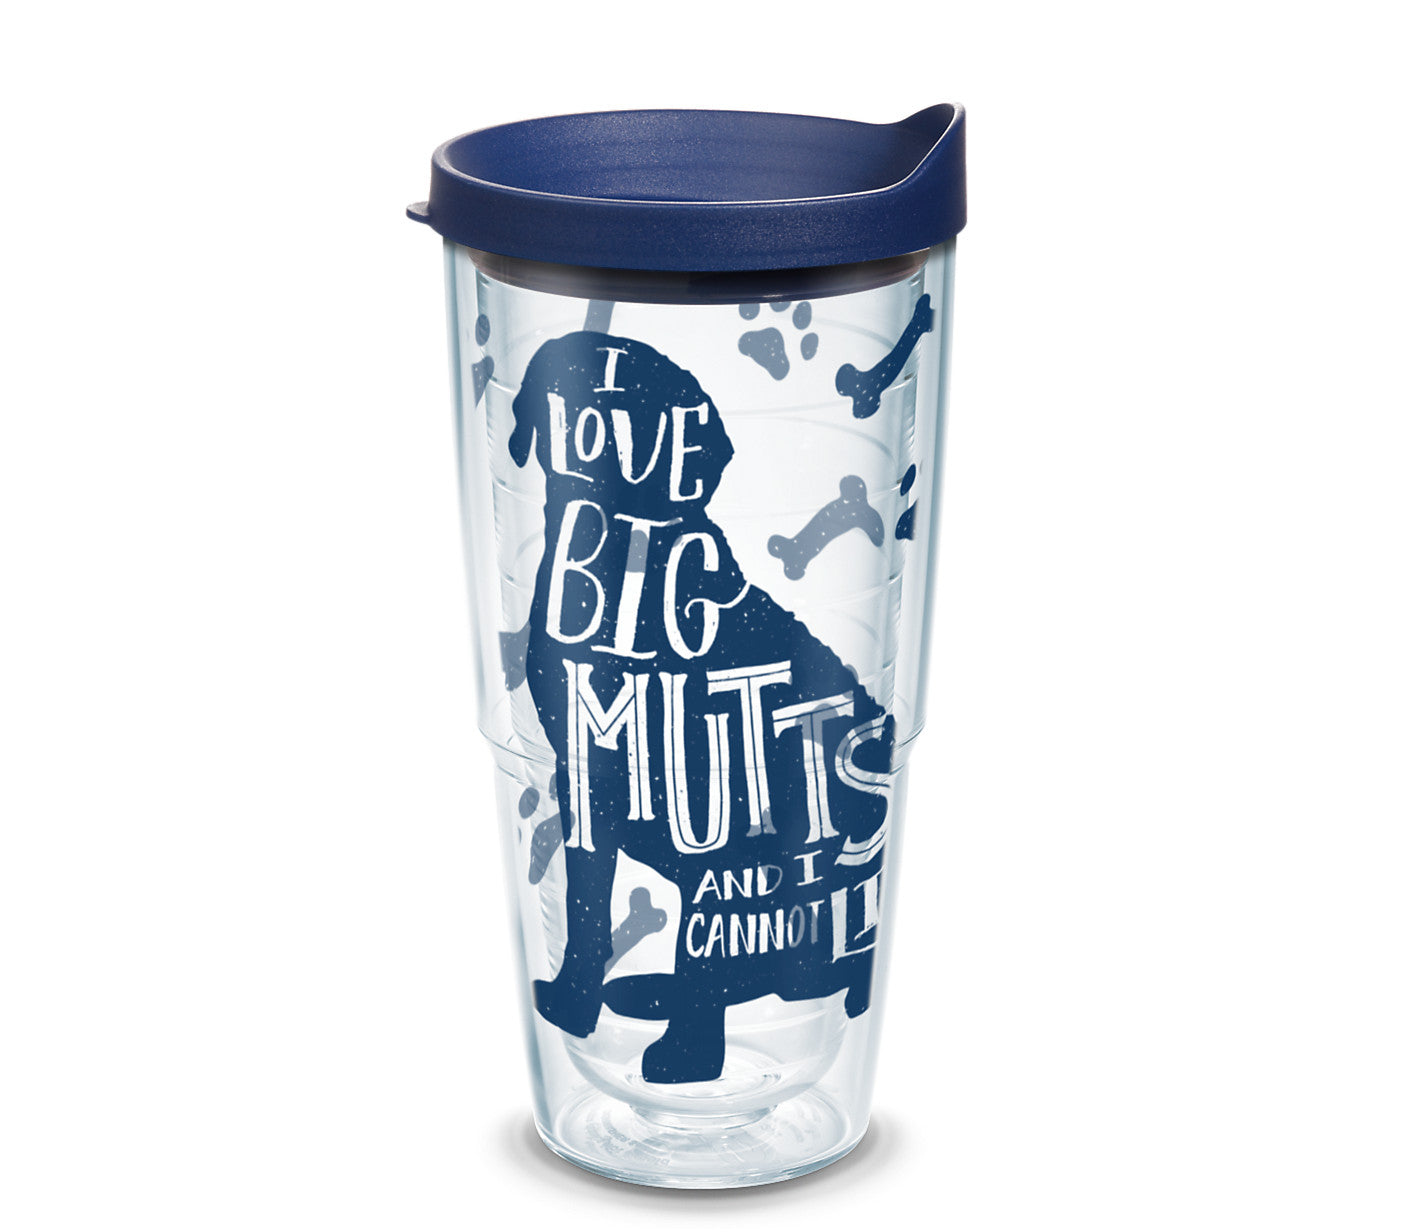 'I Love Big Mutts and I Cannot Lie', 24 oz. Tumbler with navy lid